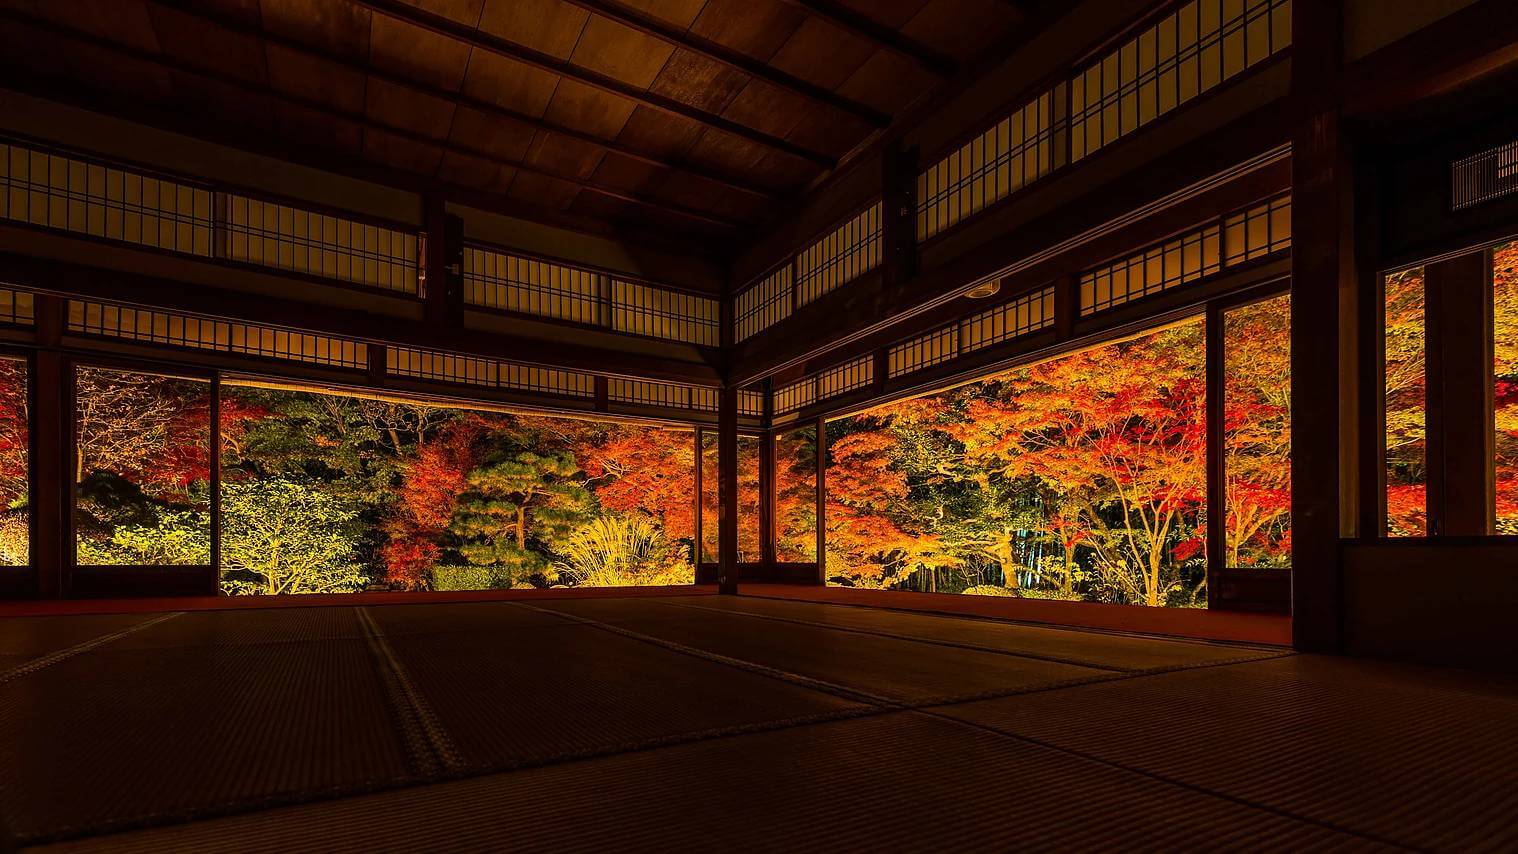 kyoto in fall photos 7 (1)